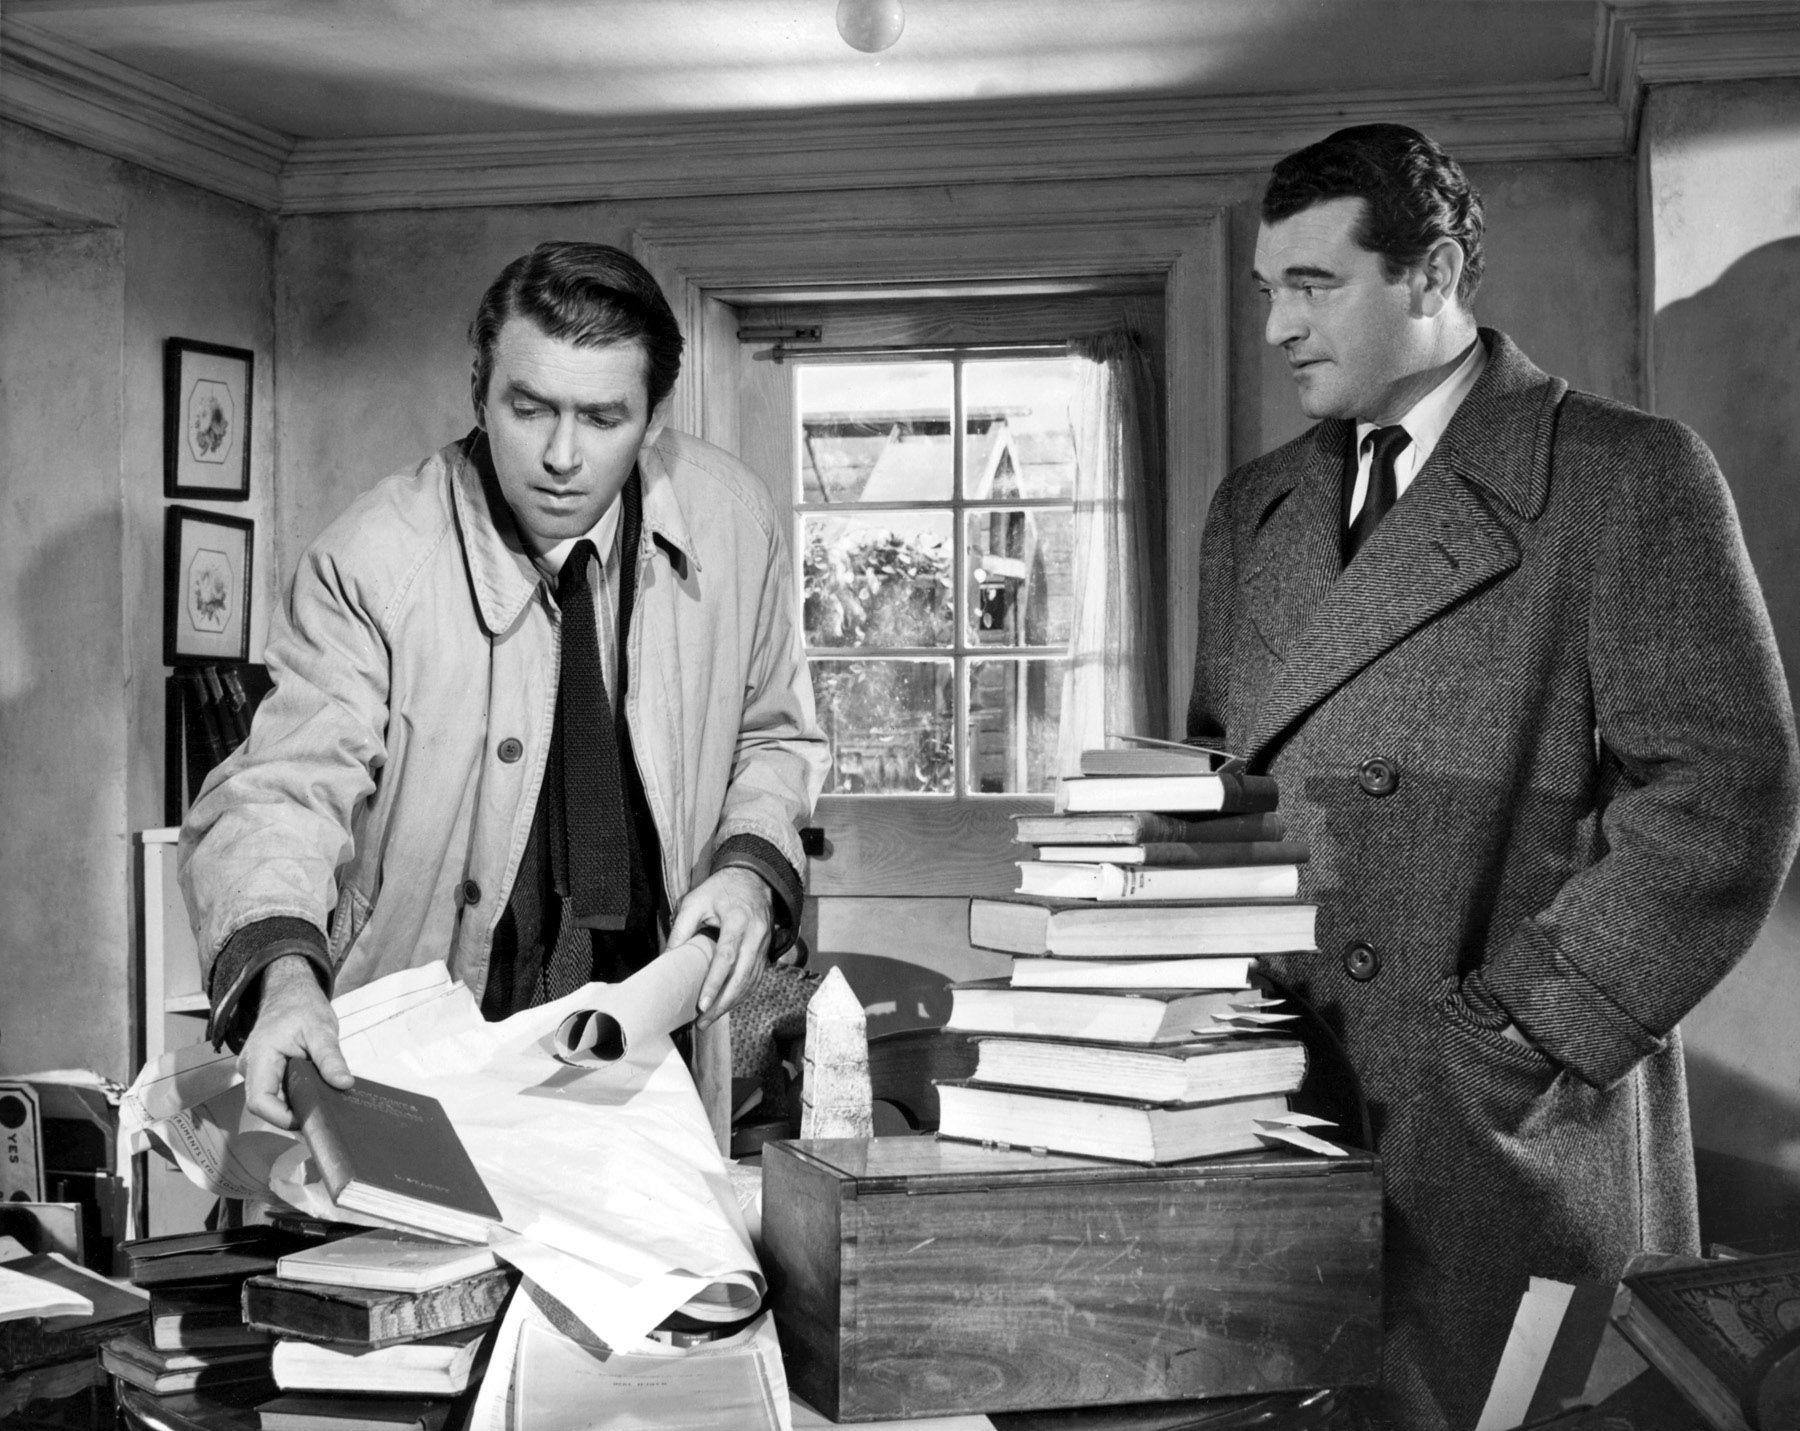 No Highway In the Sky. James Stewart and Jack Hawkins, two great movie actors.